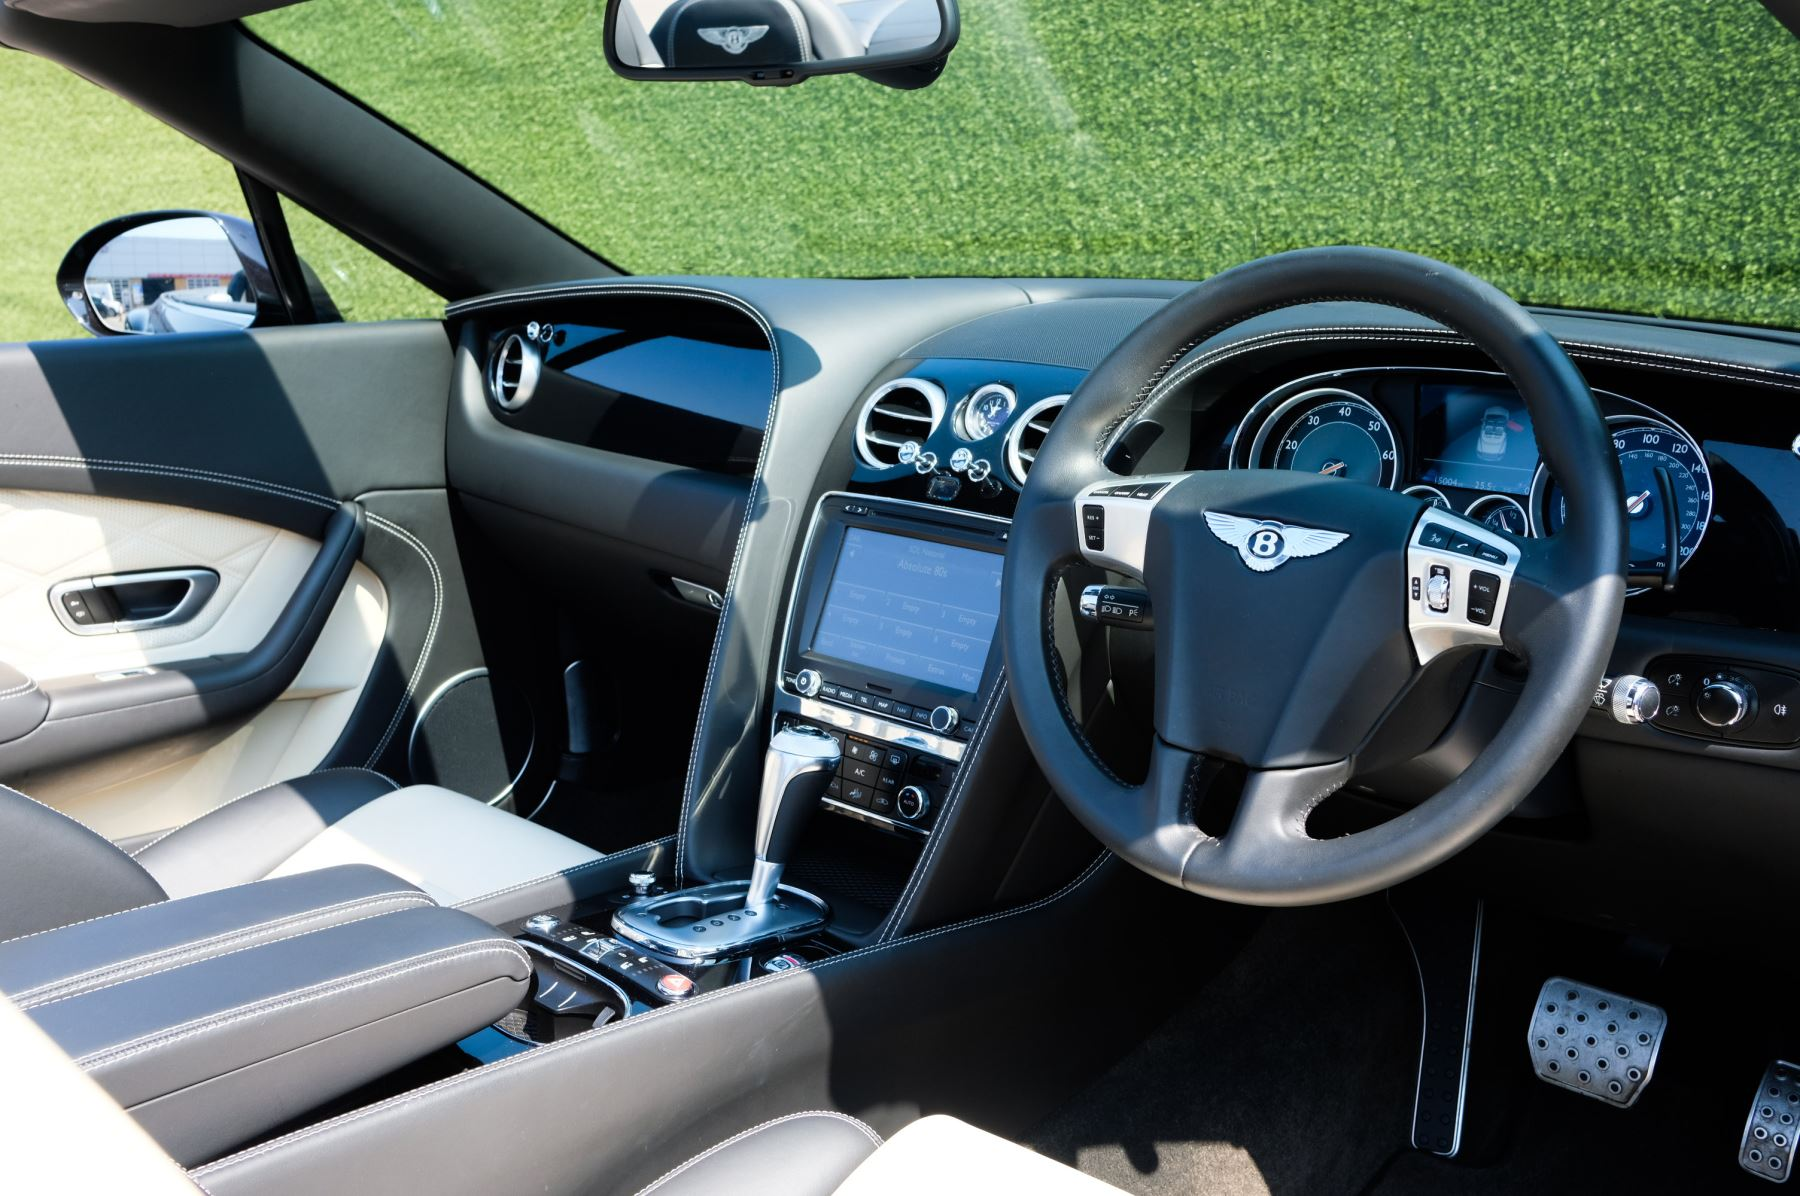 Bentley Continental GTC 4.0 V8 S - Mulliner Driving Specification image 11